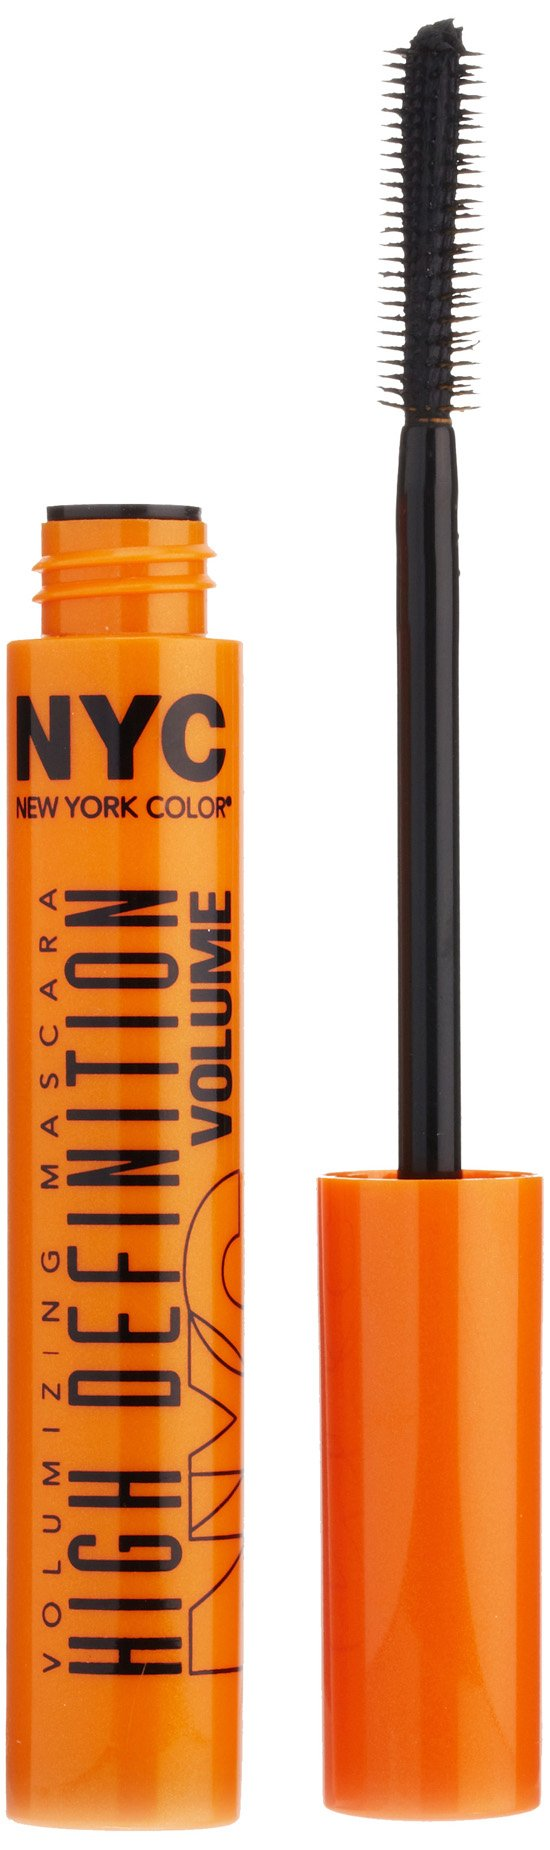 New York Color Mascara High Definition Volumizing Mascara, Extreme Black, 0.27 Fluid Ounce